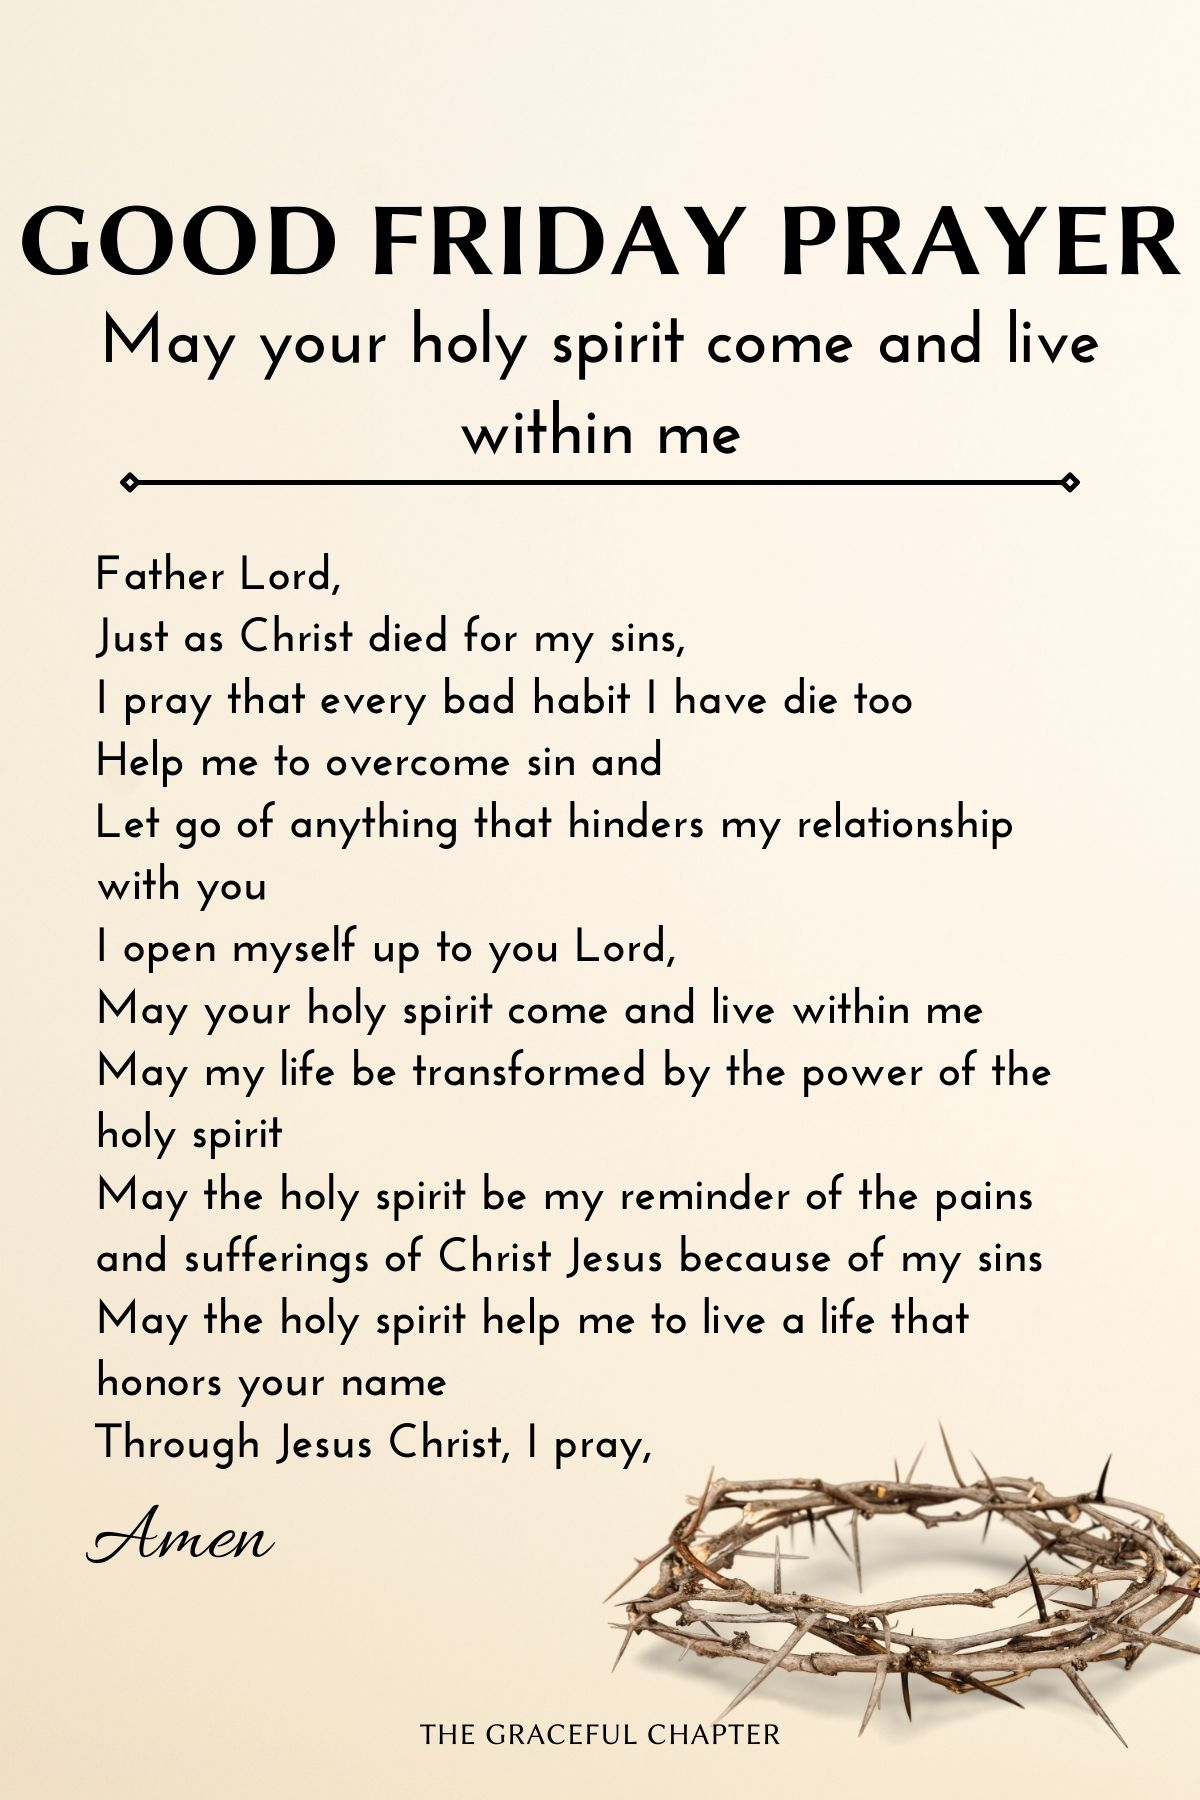 Good Friday Prayers - May your holy spirit come and live within me